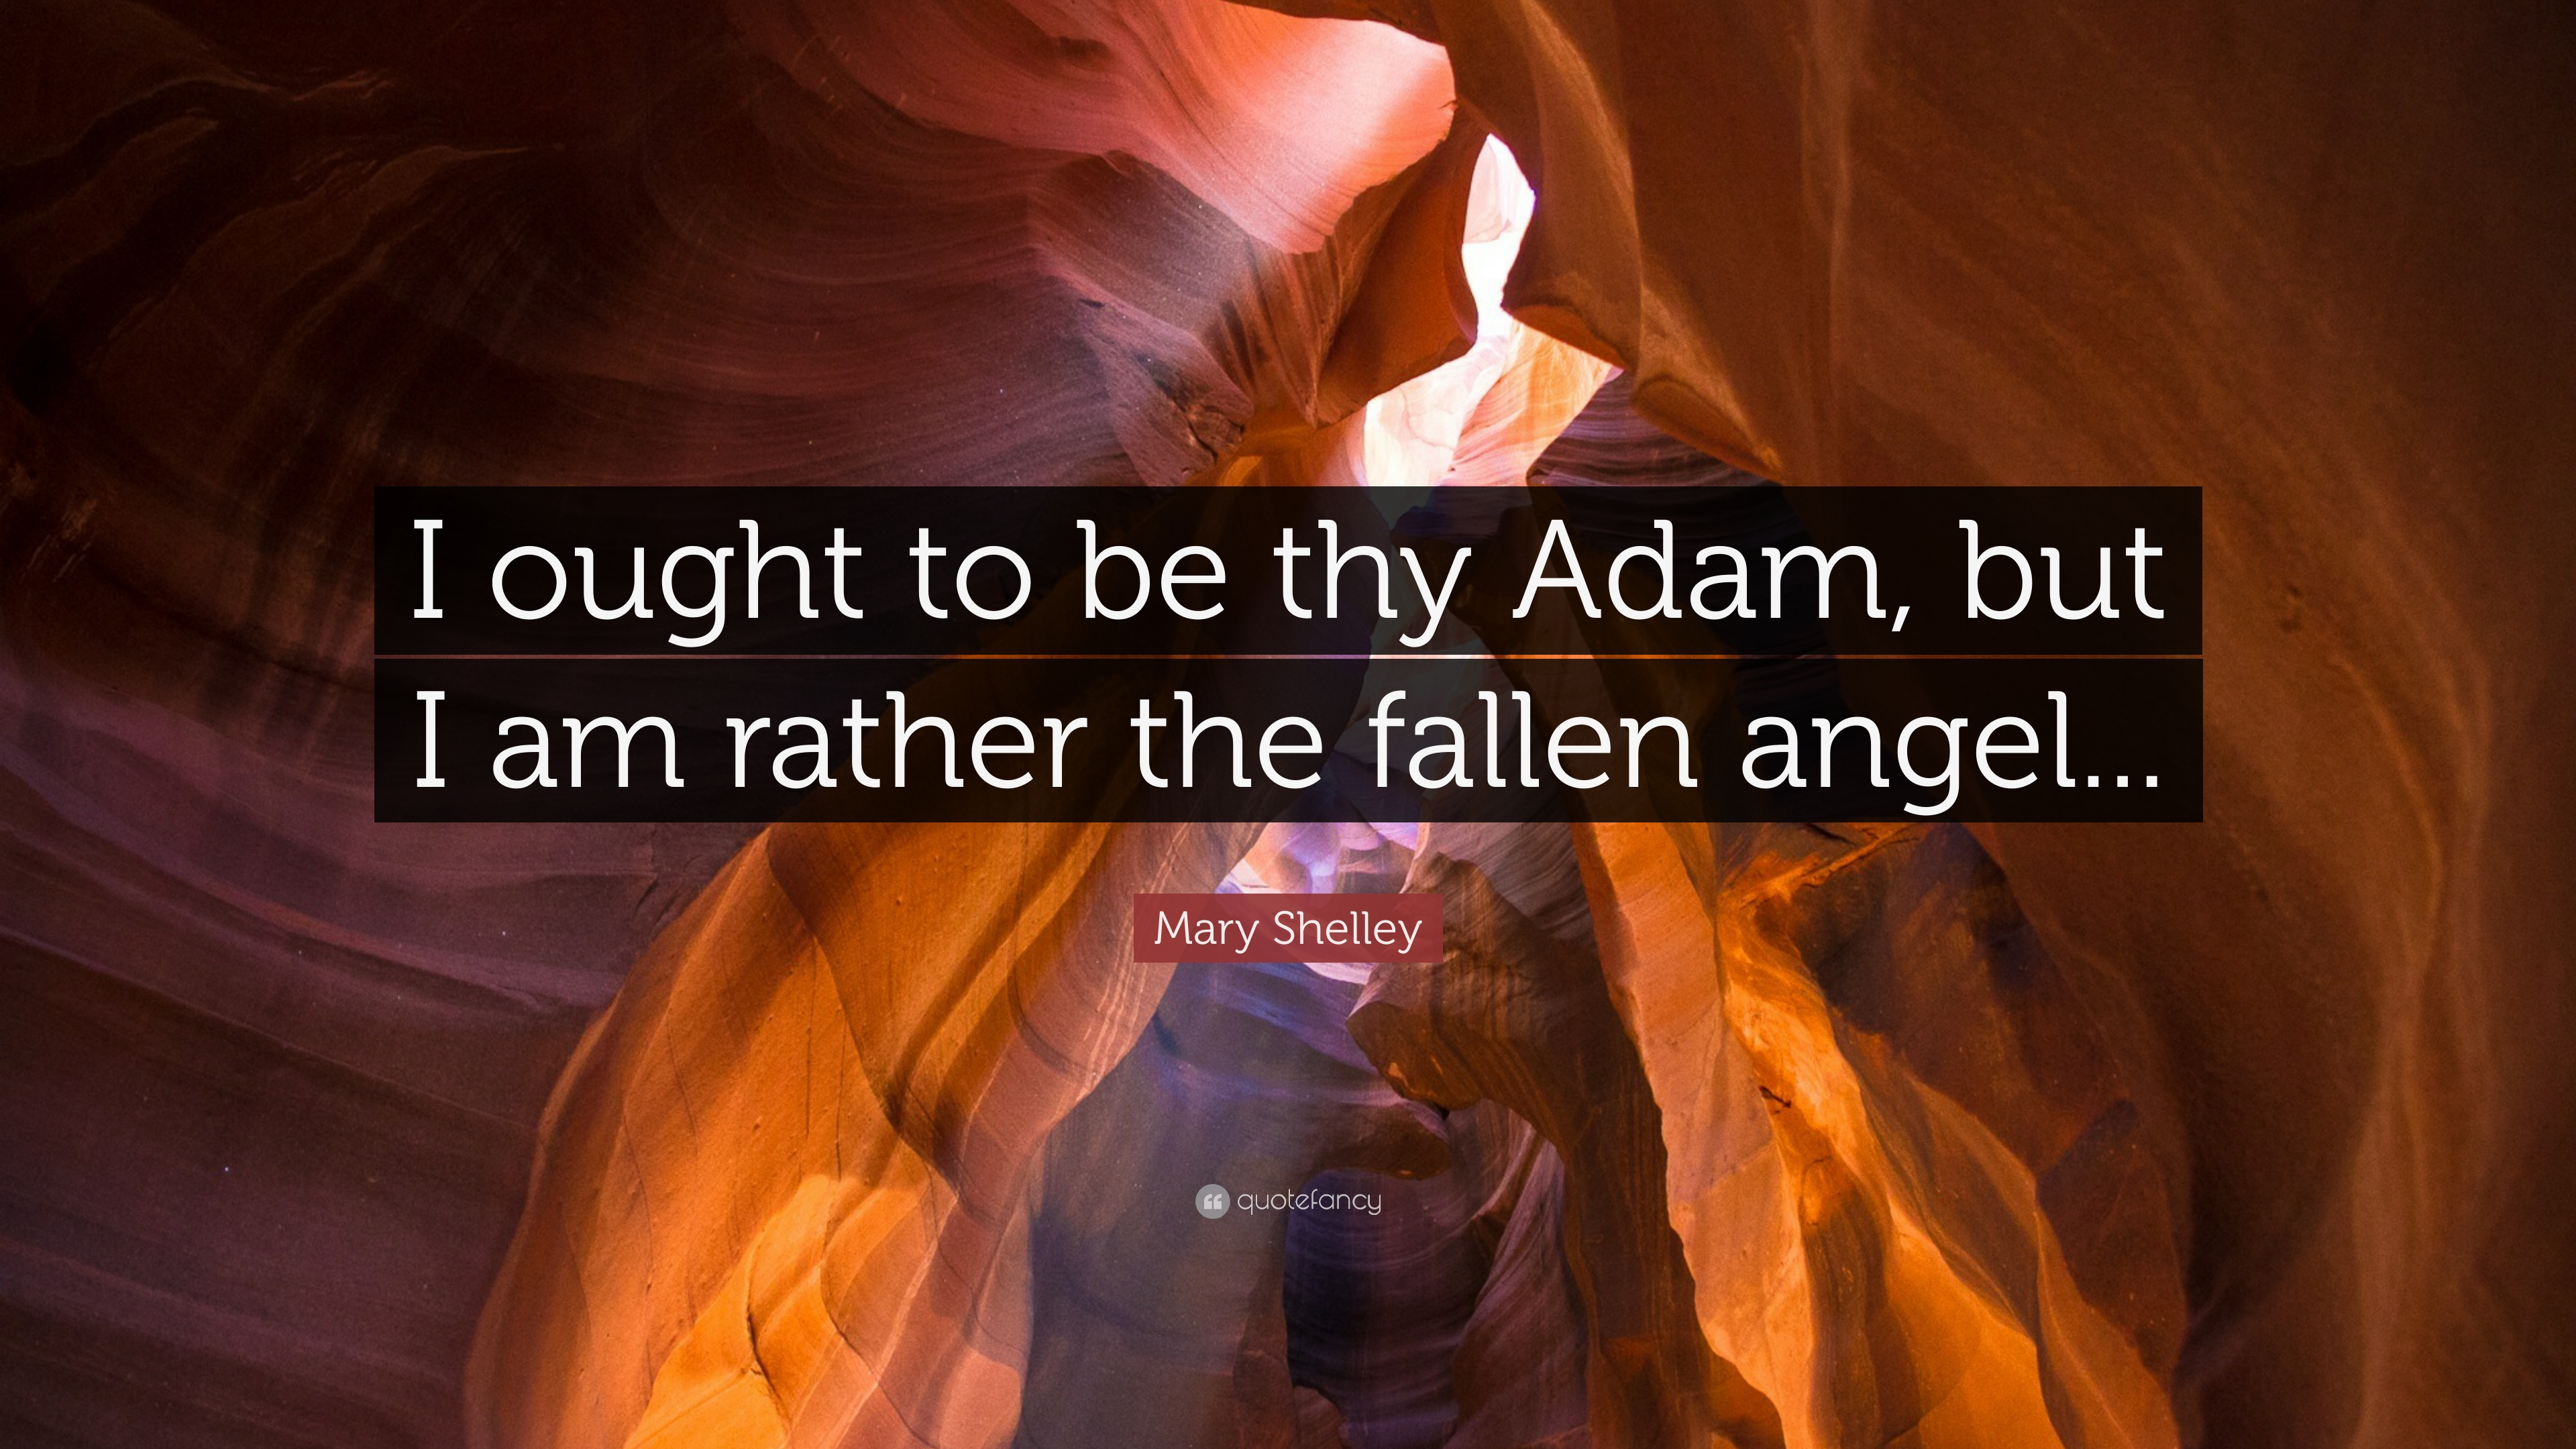 i ought to be thy adam quote